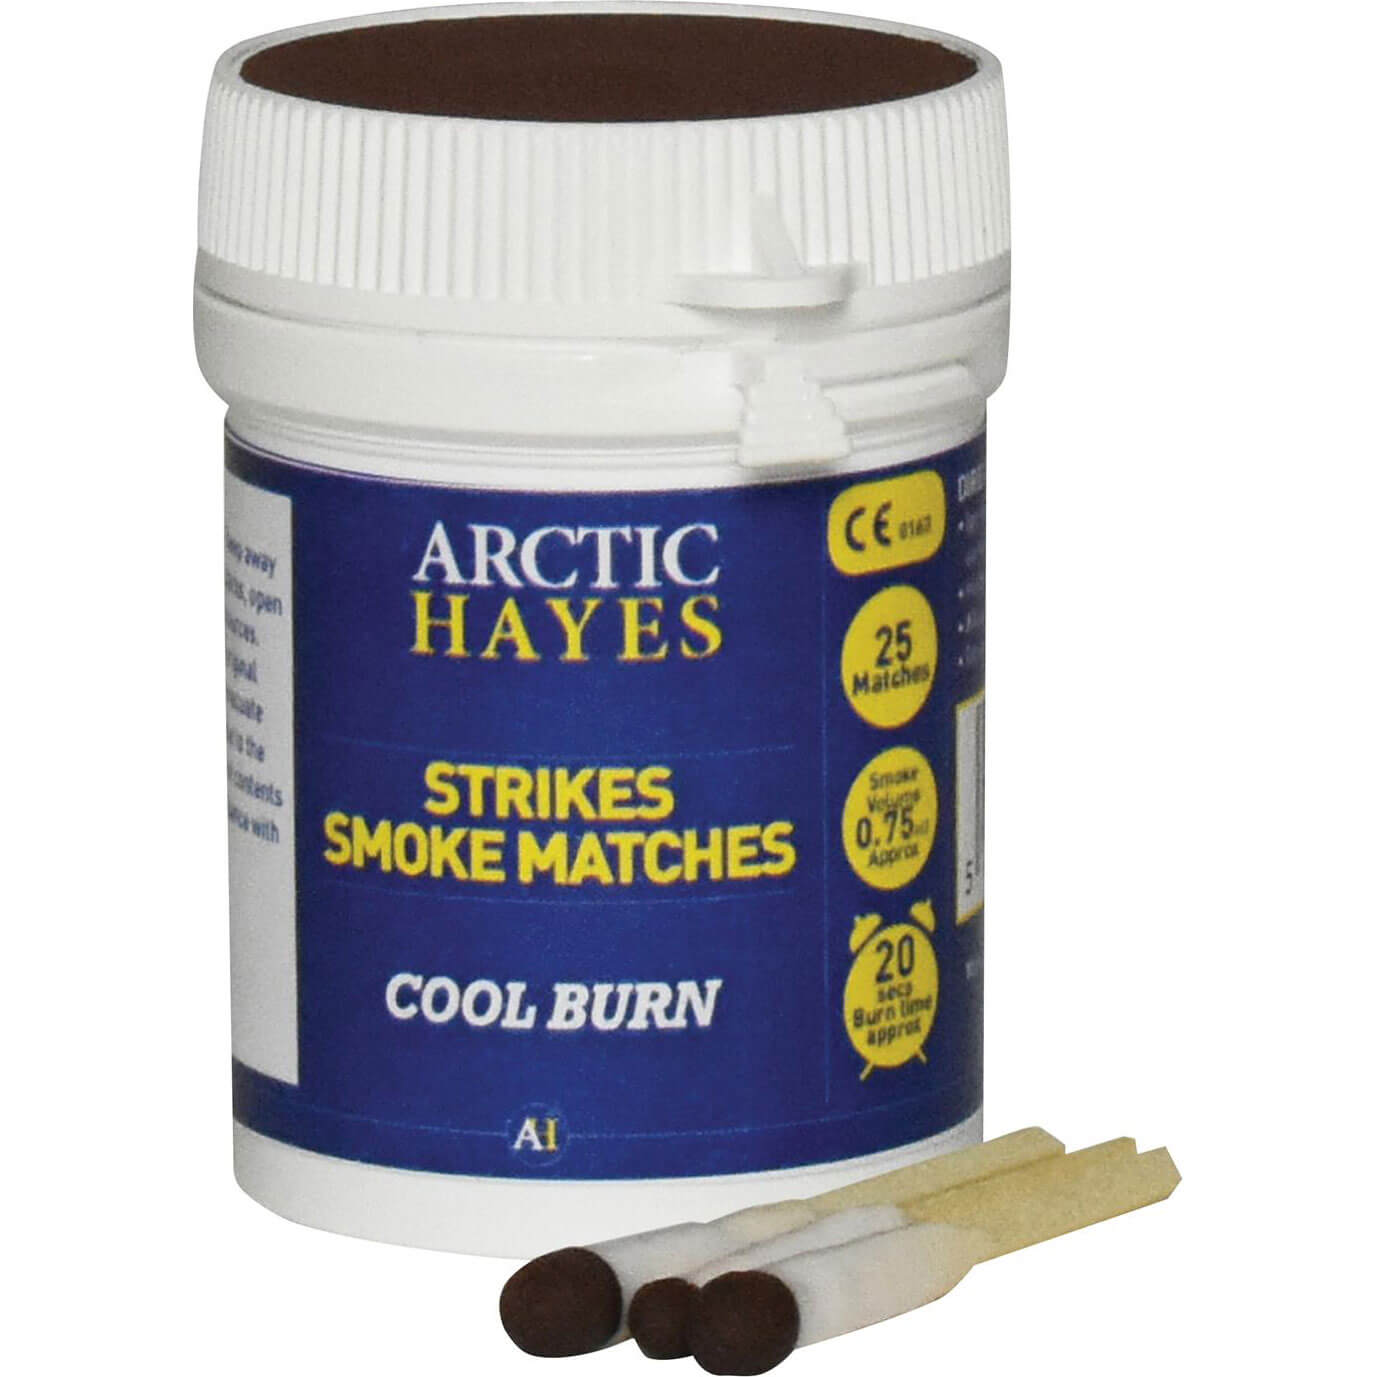 Arctic Hayes Strikes Smoke Matches Pack of 25